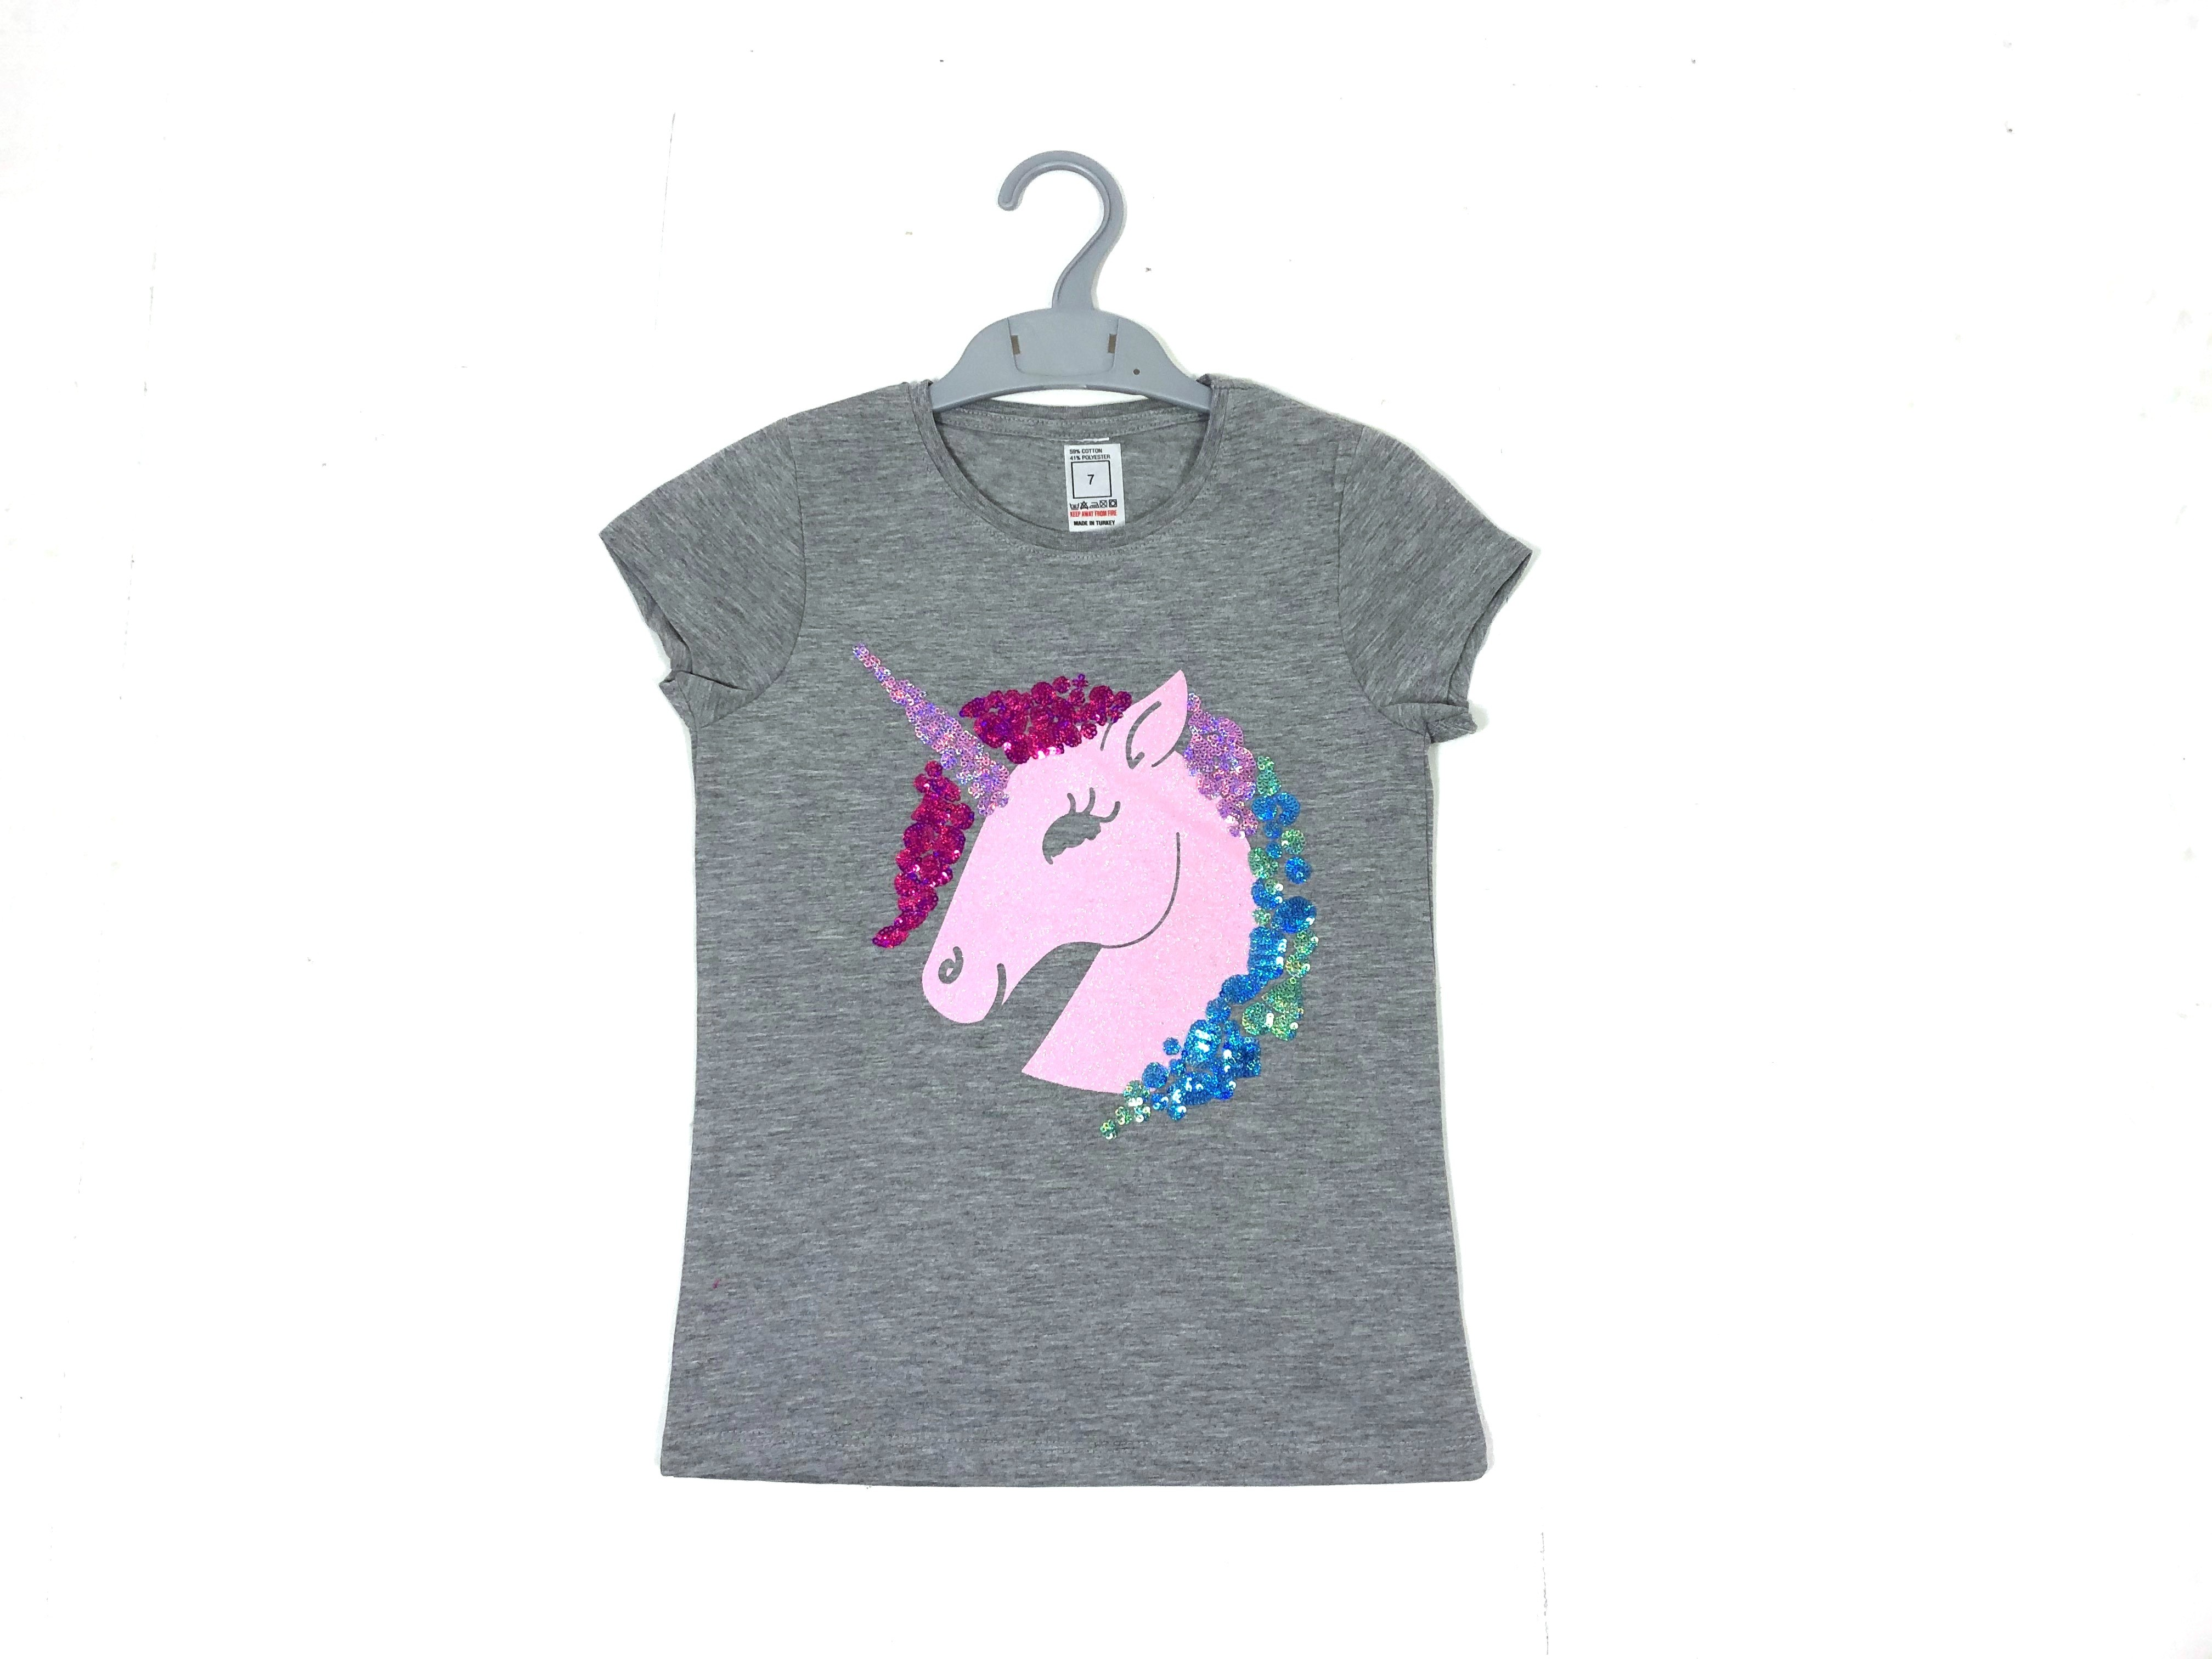 Ex Store 'Unicorn' Girls Grey T Shirt PACK OF 12